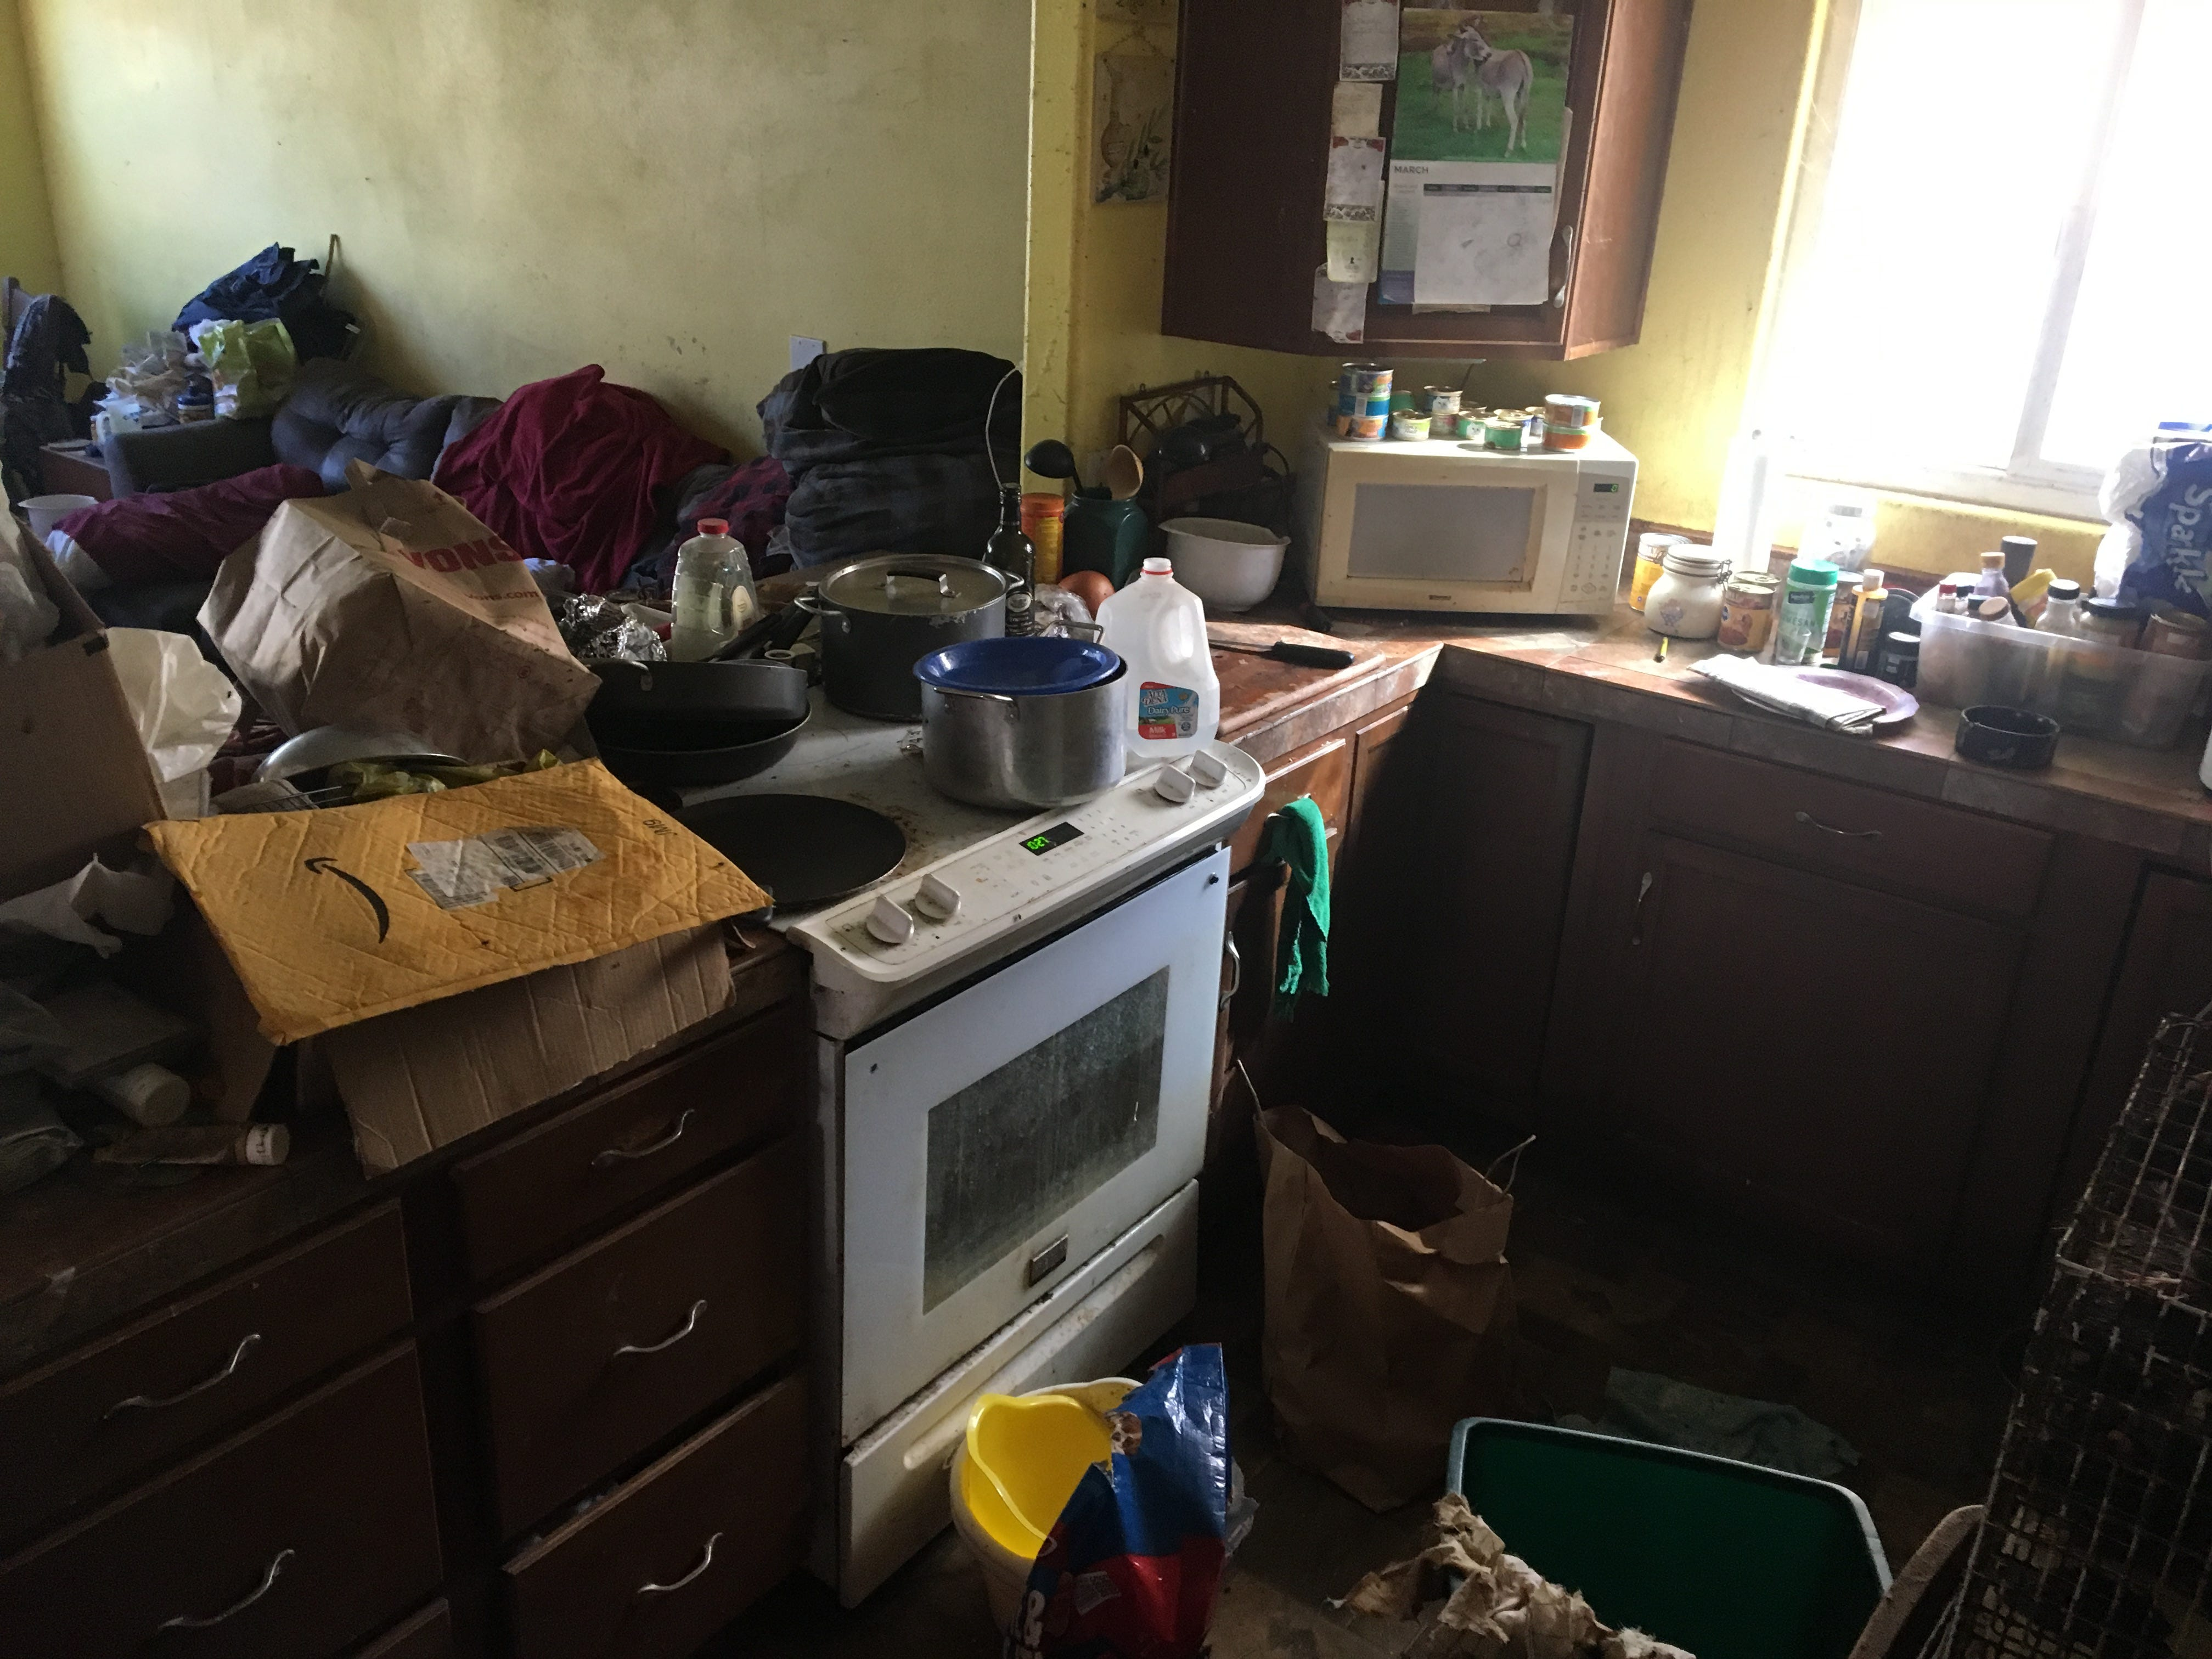 This was the scene of a house in Ojai where an elderly man and his daughters lived with hundreds of rats and other animals in conditions deemed unfit for human life.